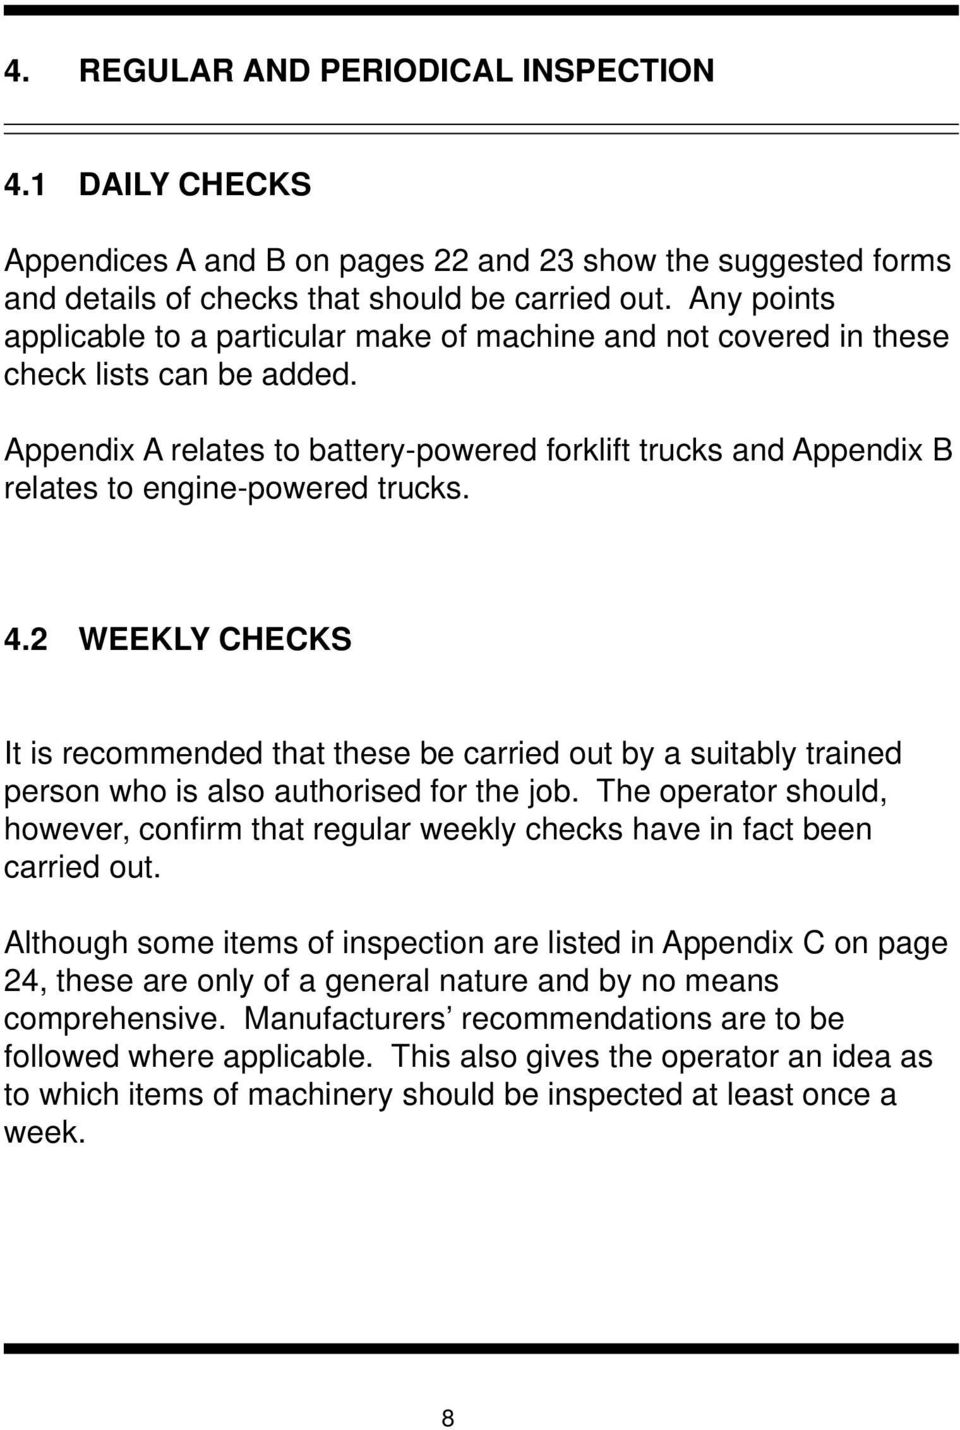 Appendix A relates to battery-powered forklift trucks and Appendix B relates to engine-powered trucks. 4.